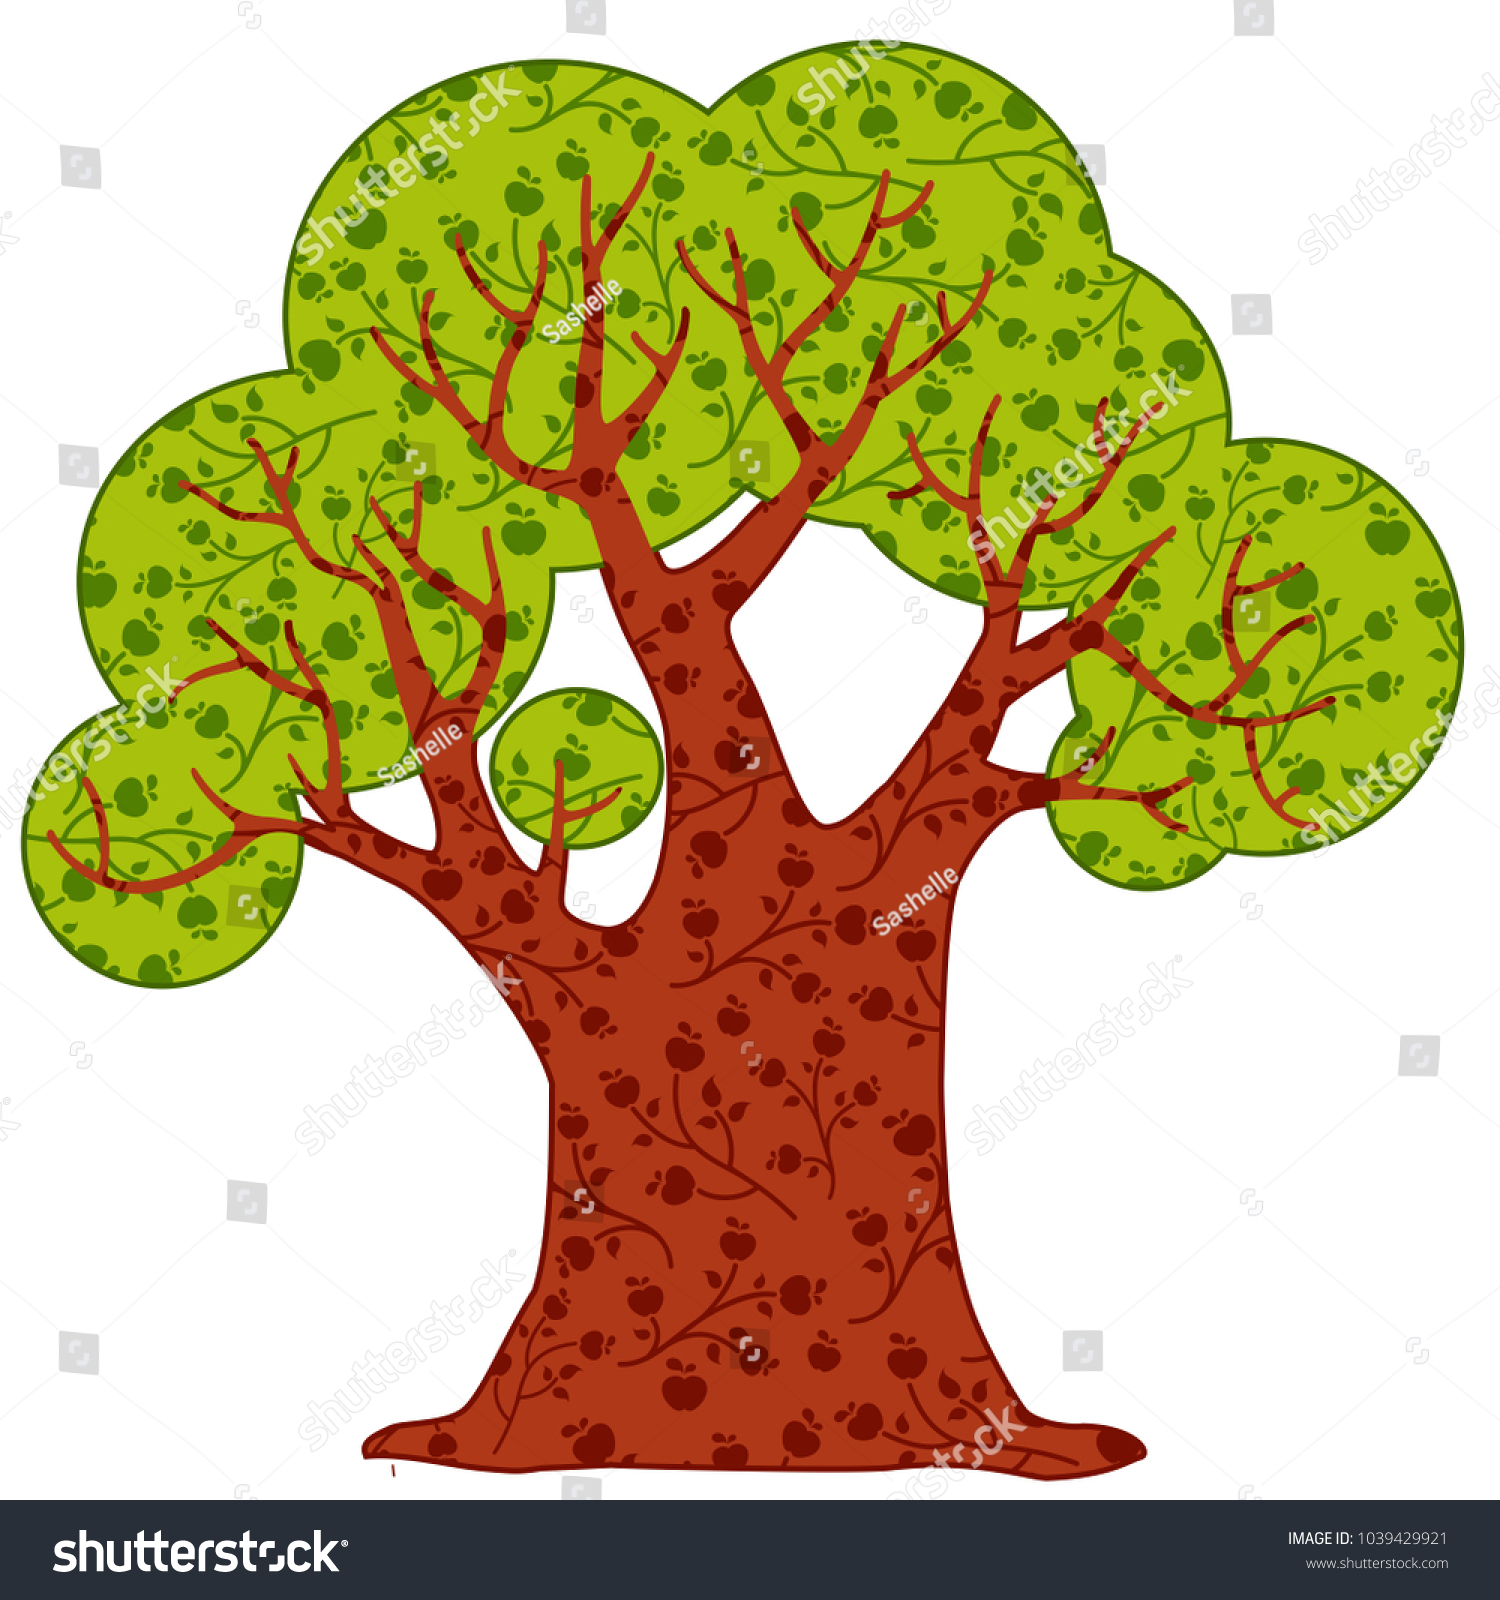 b0bb0531ee7a7 Big vector tree with ornament on the leaves and trunk. Cute forest. Bright  summer